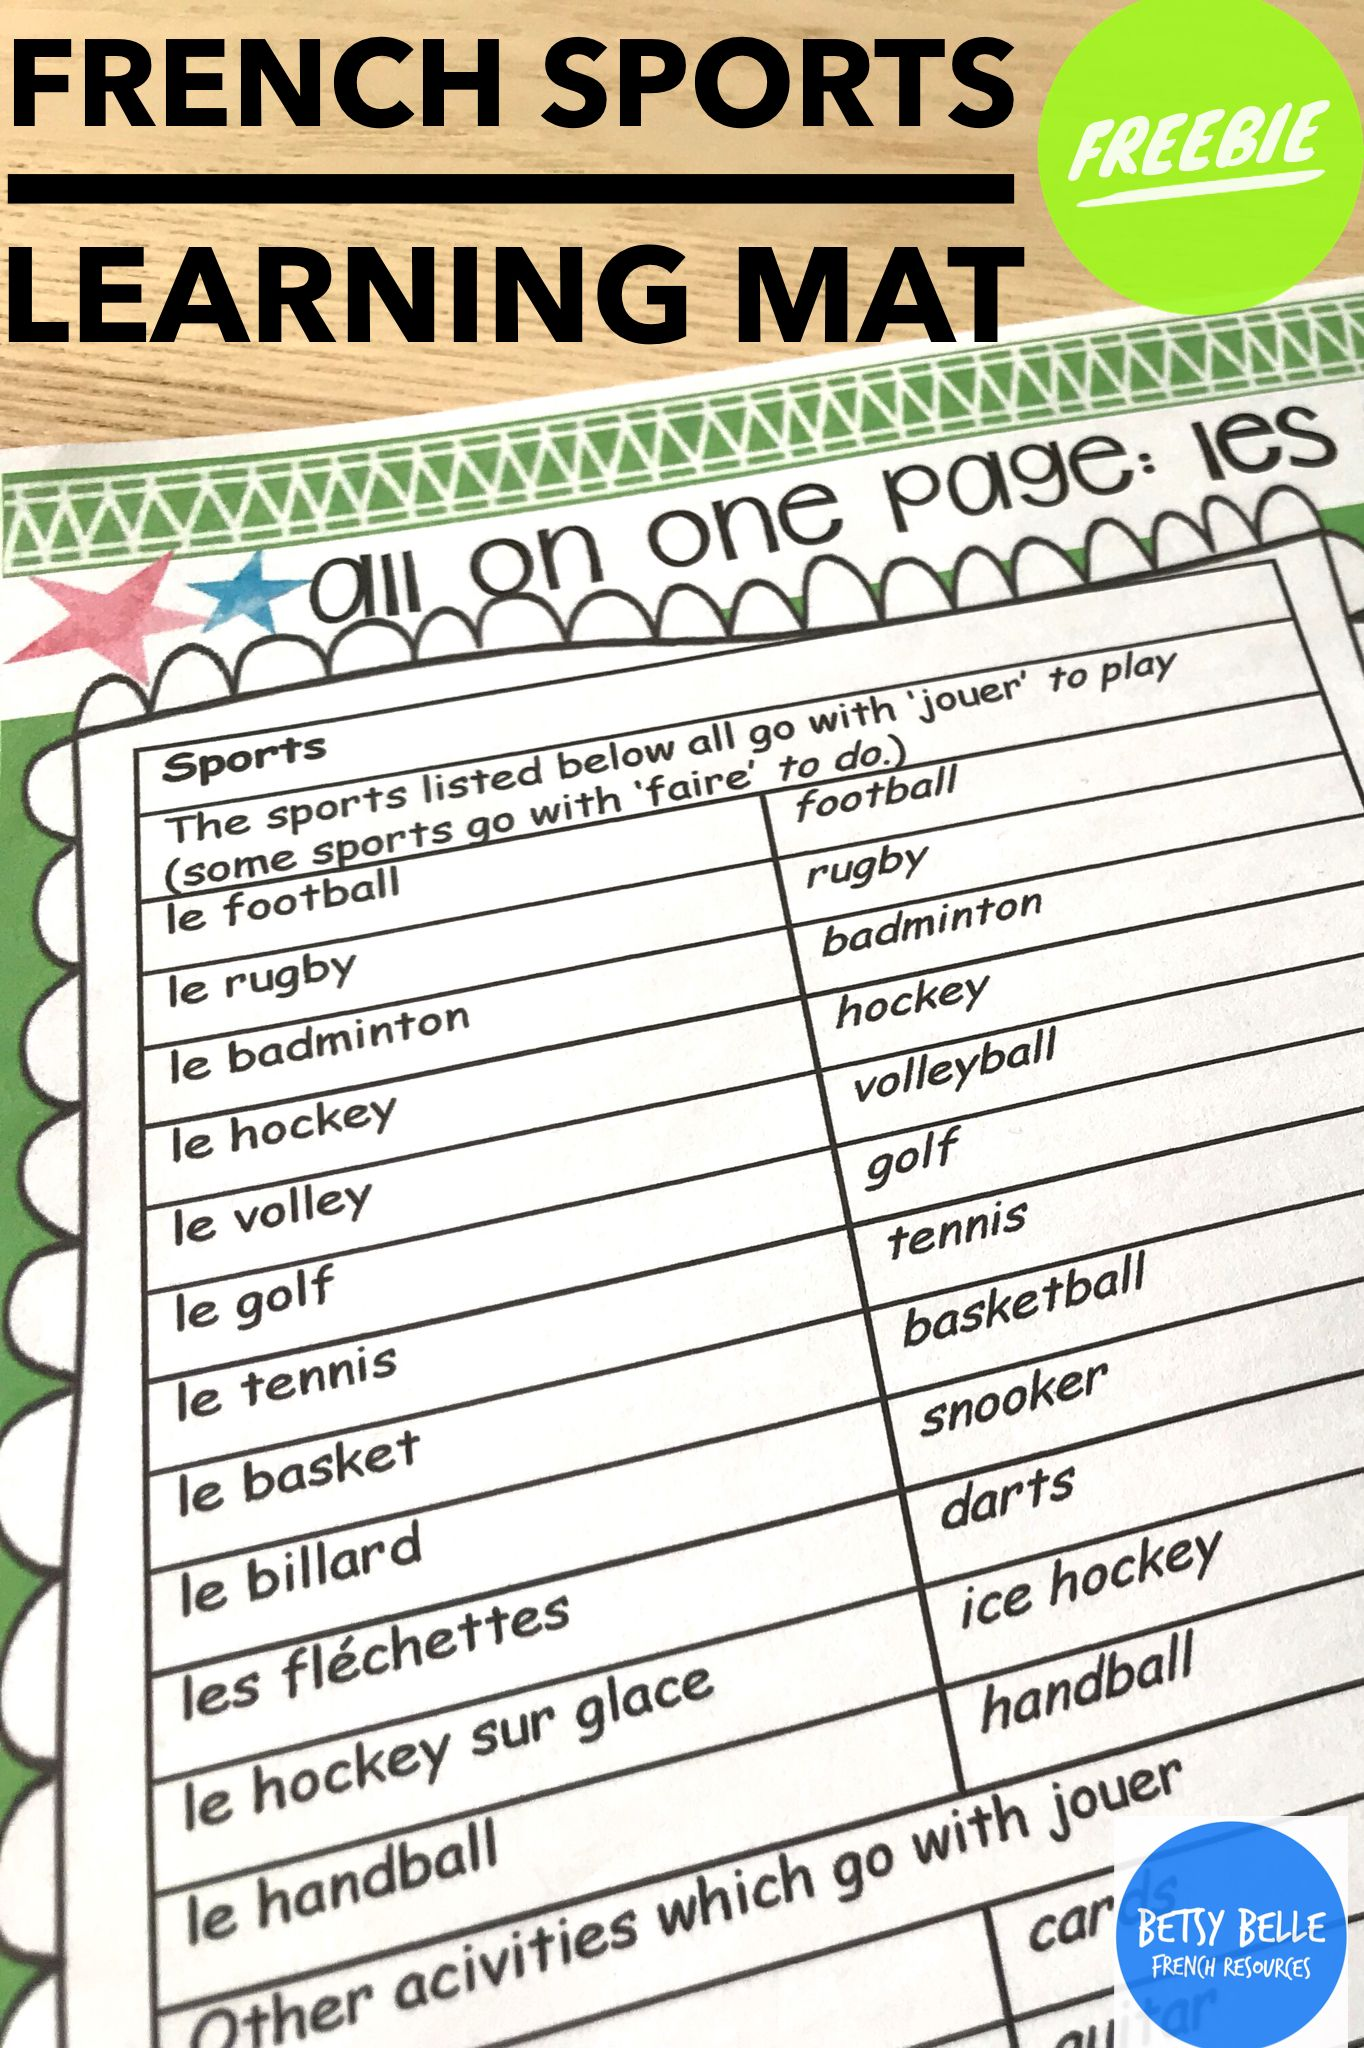 French Learning Mat Sports Les Sports Learn French Teaching French Teaching Resources